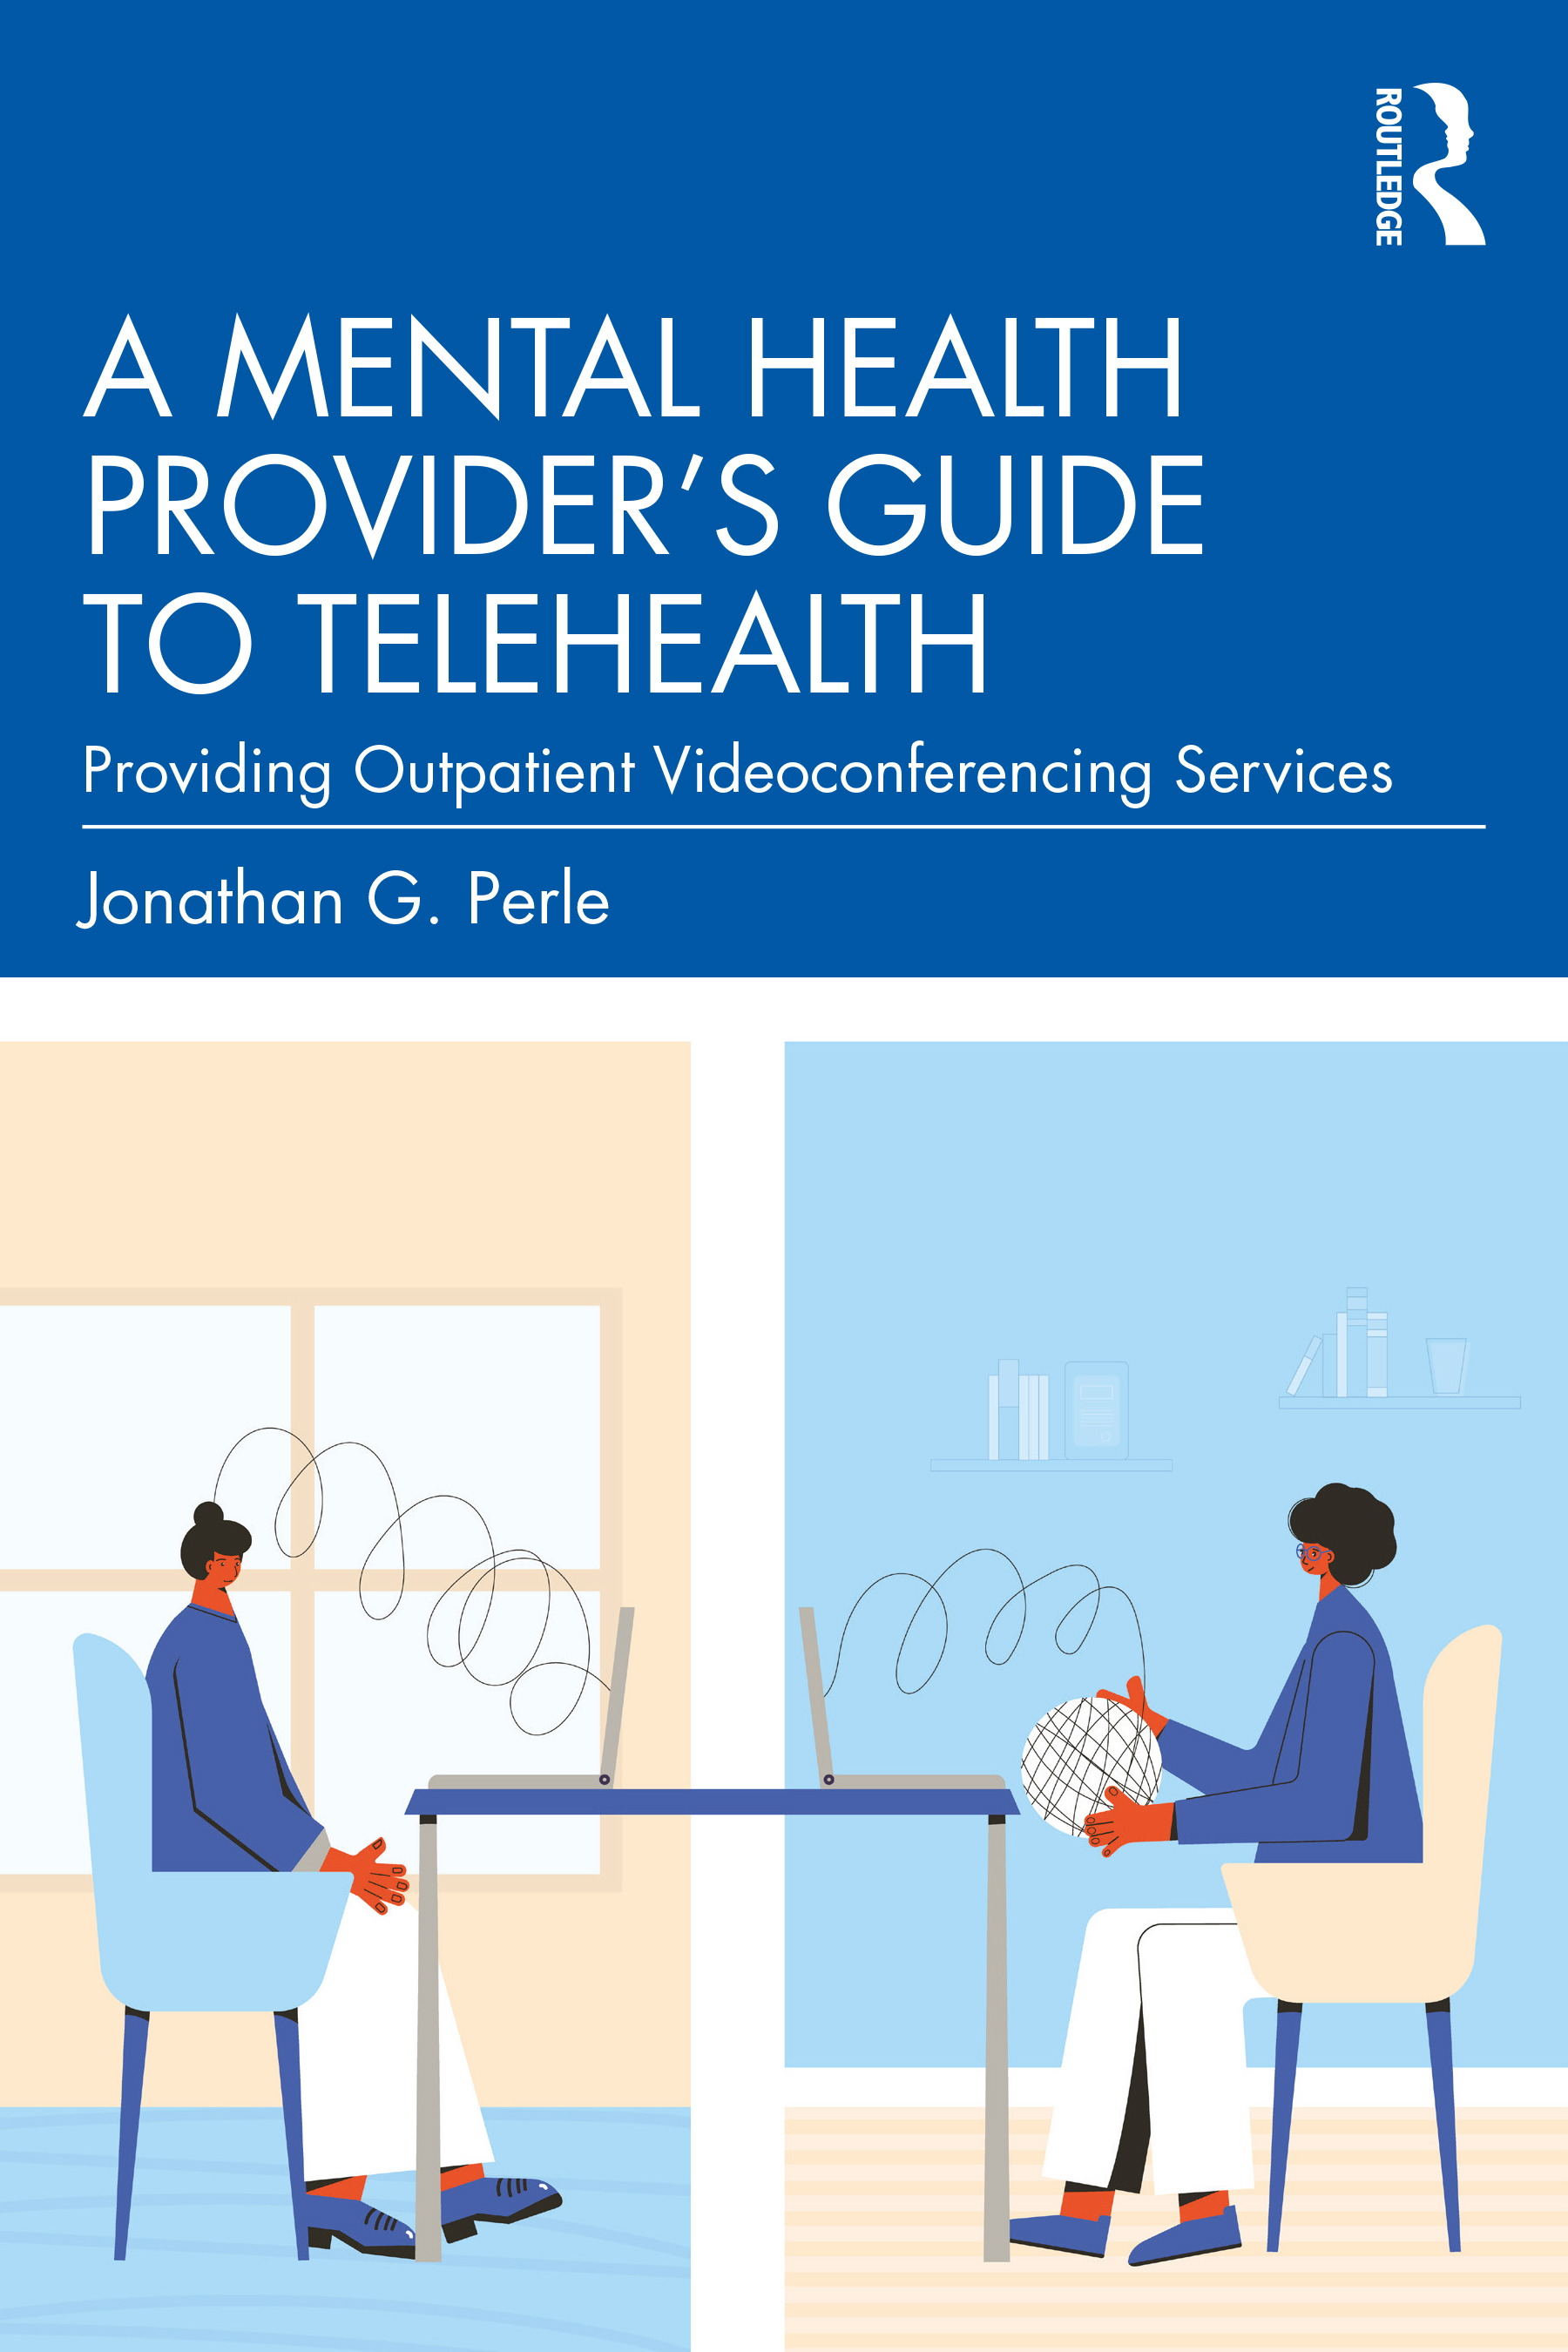 A Mental Health Provider's Guide to Telehealth